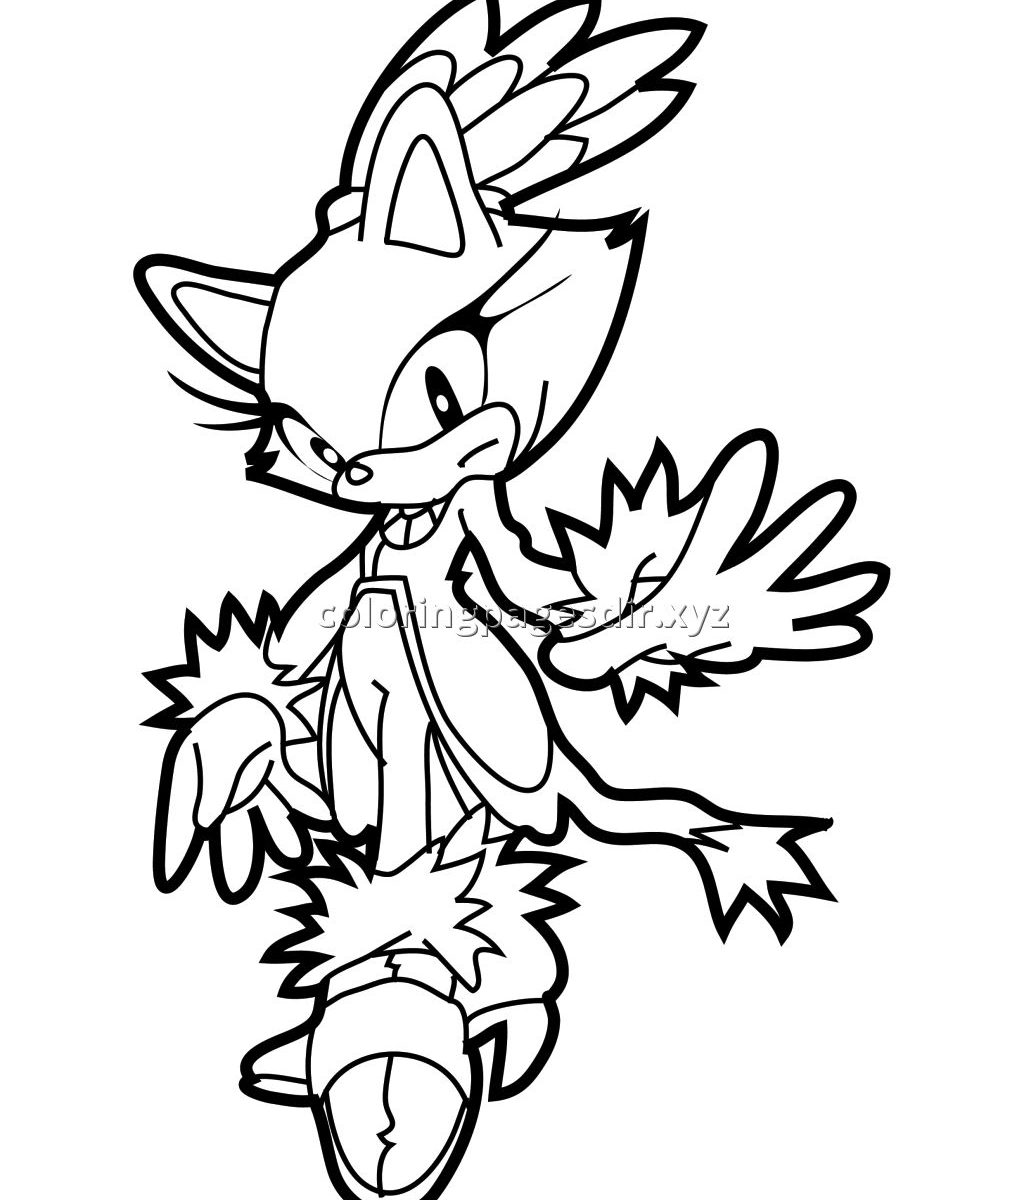 blaze the cat coloring pages blaze the cat coloring pages coloring home pages the coloring cat blaze